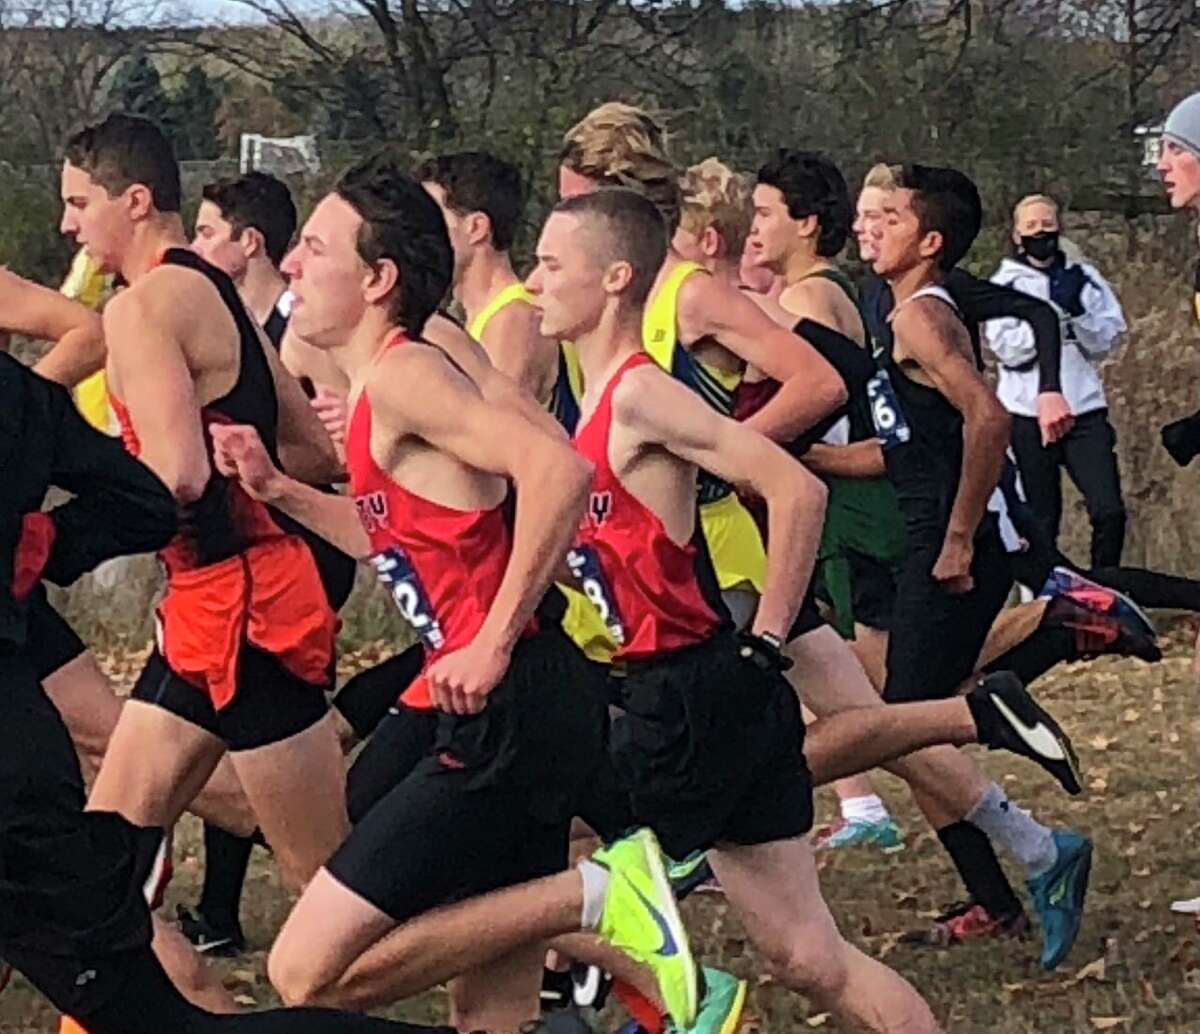 Reed City runners pick up the pace at the regional race on Saturday. (Courtesy photo)